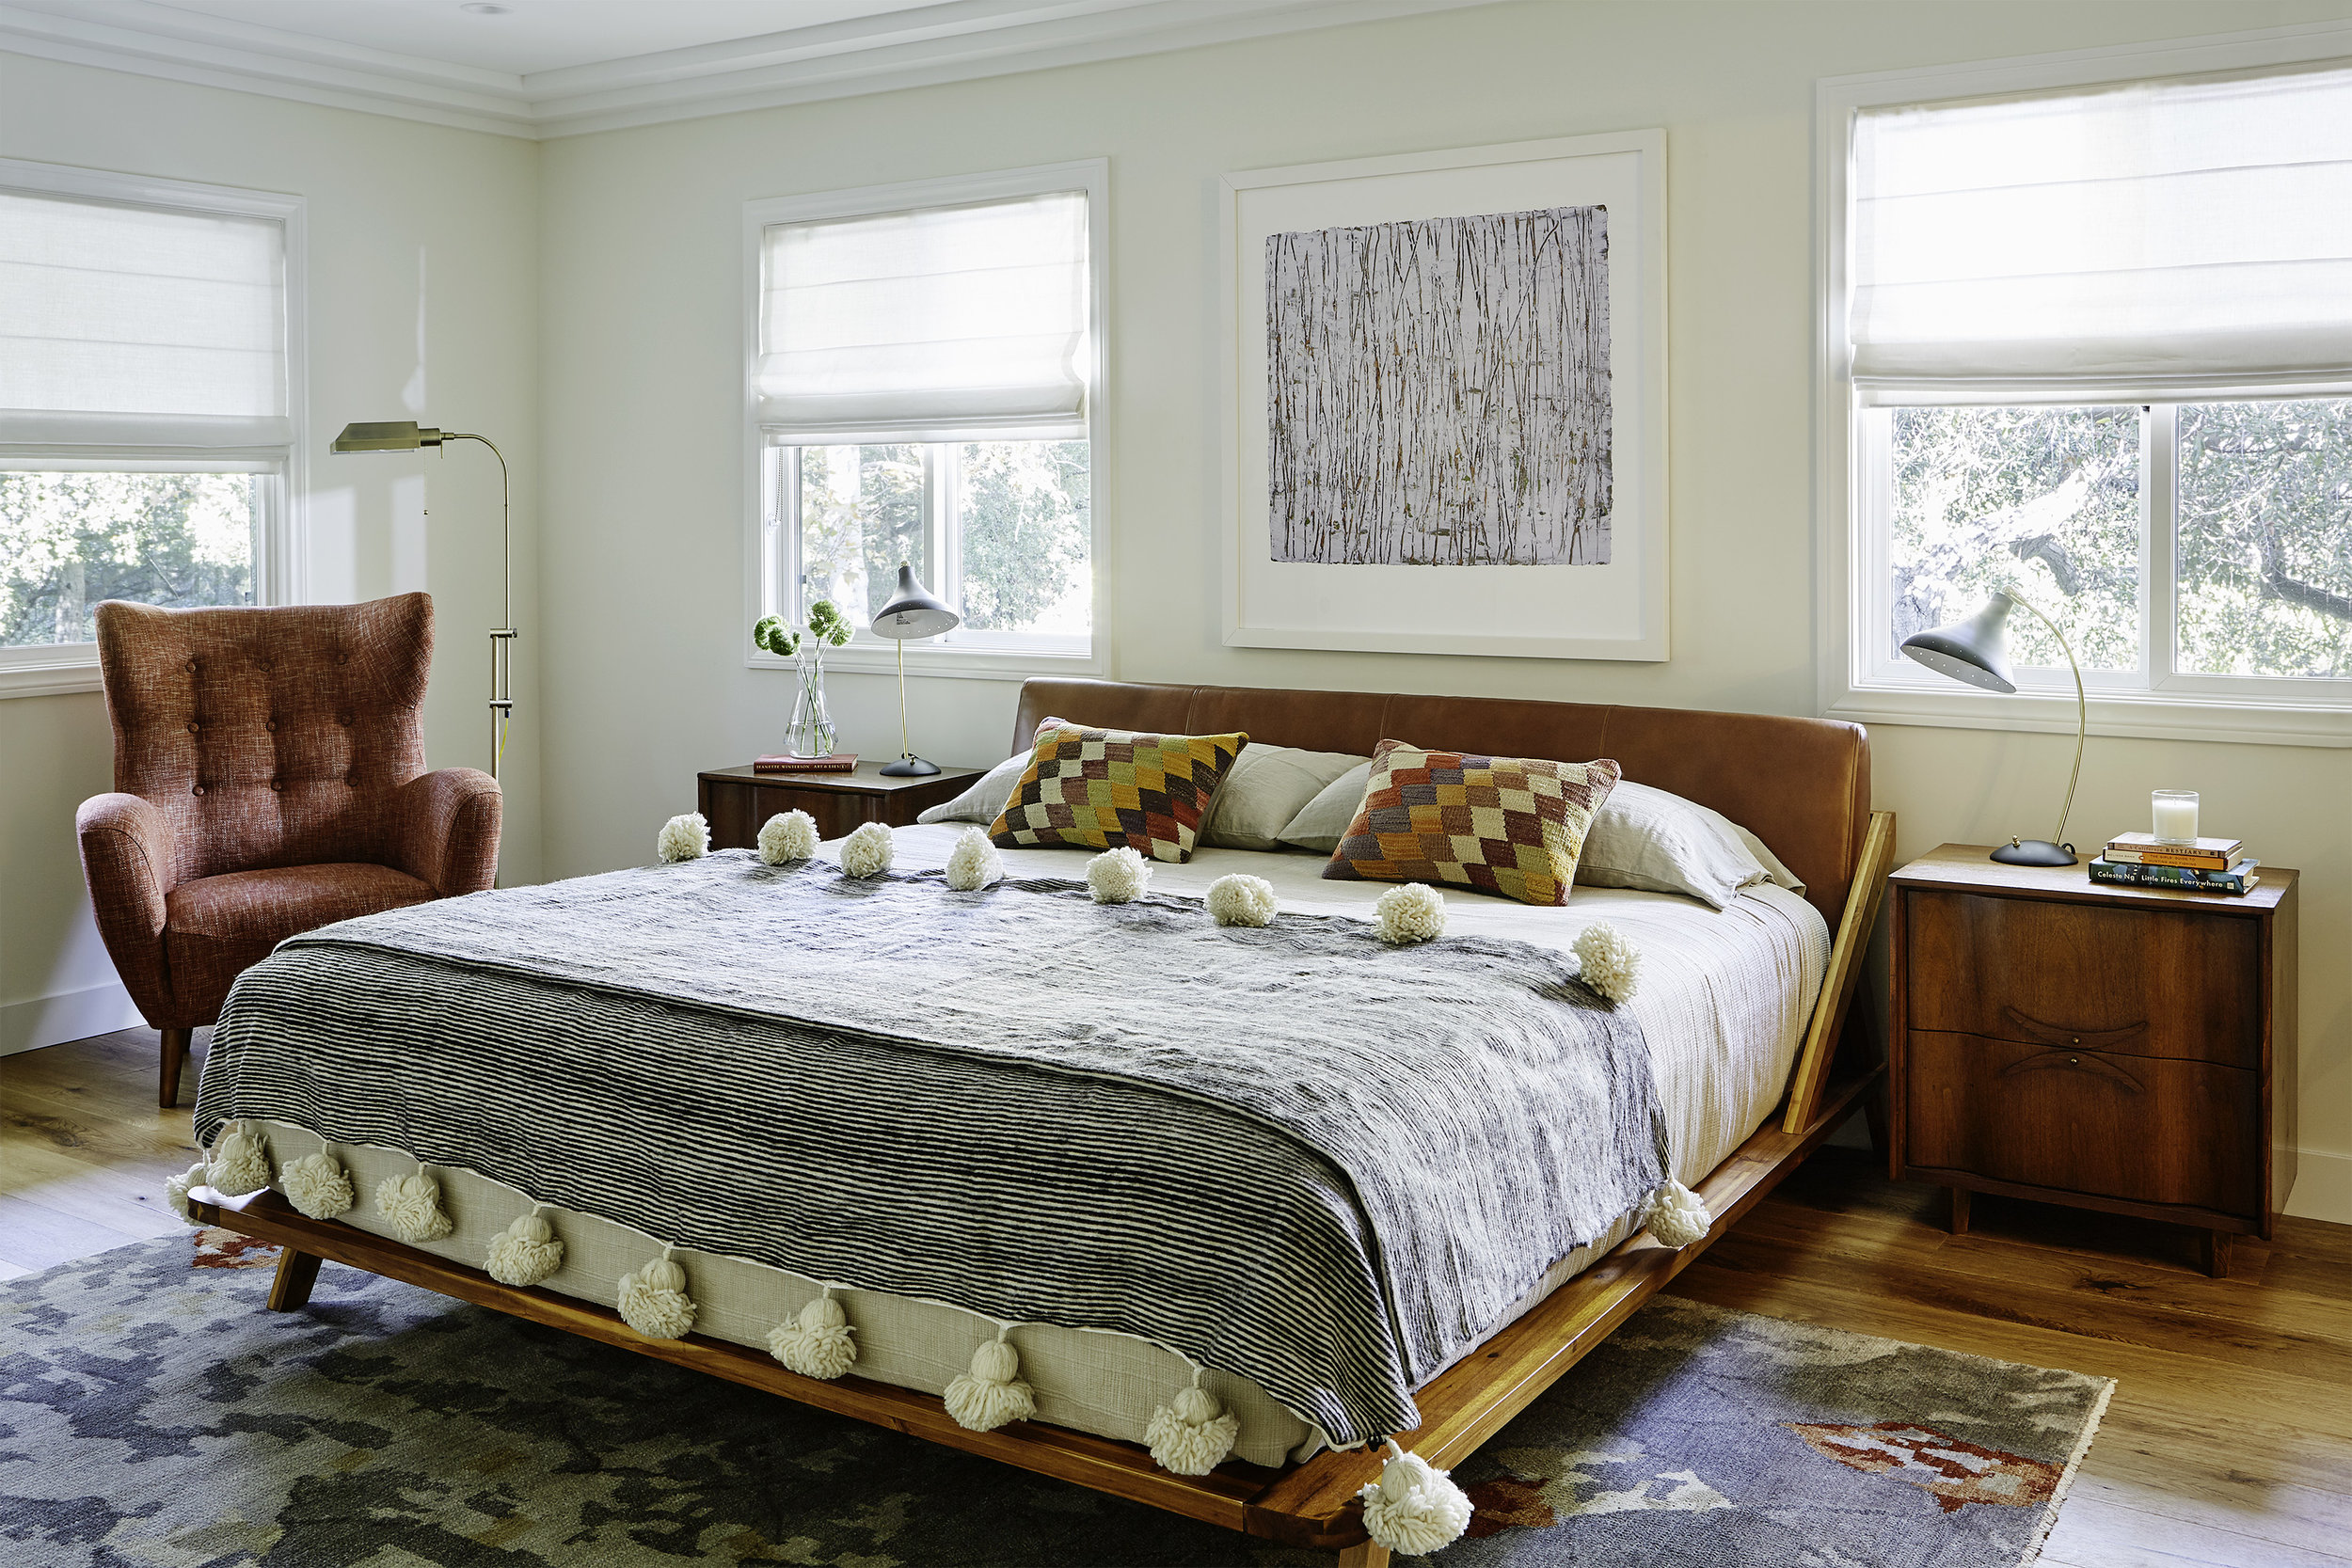 Lily_Spindle_Pasadena_Master_Bedroom_1_091.jpg